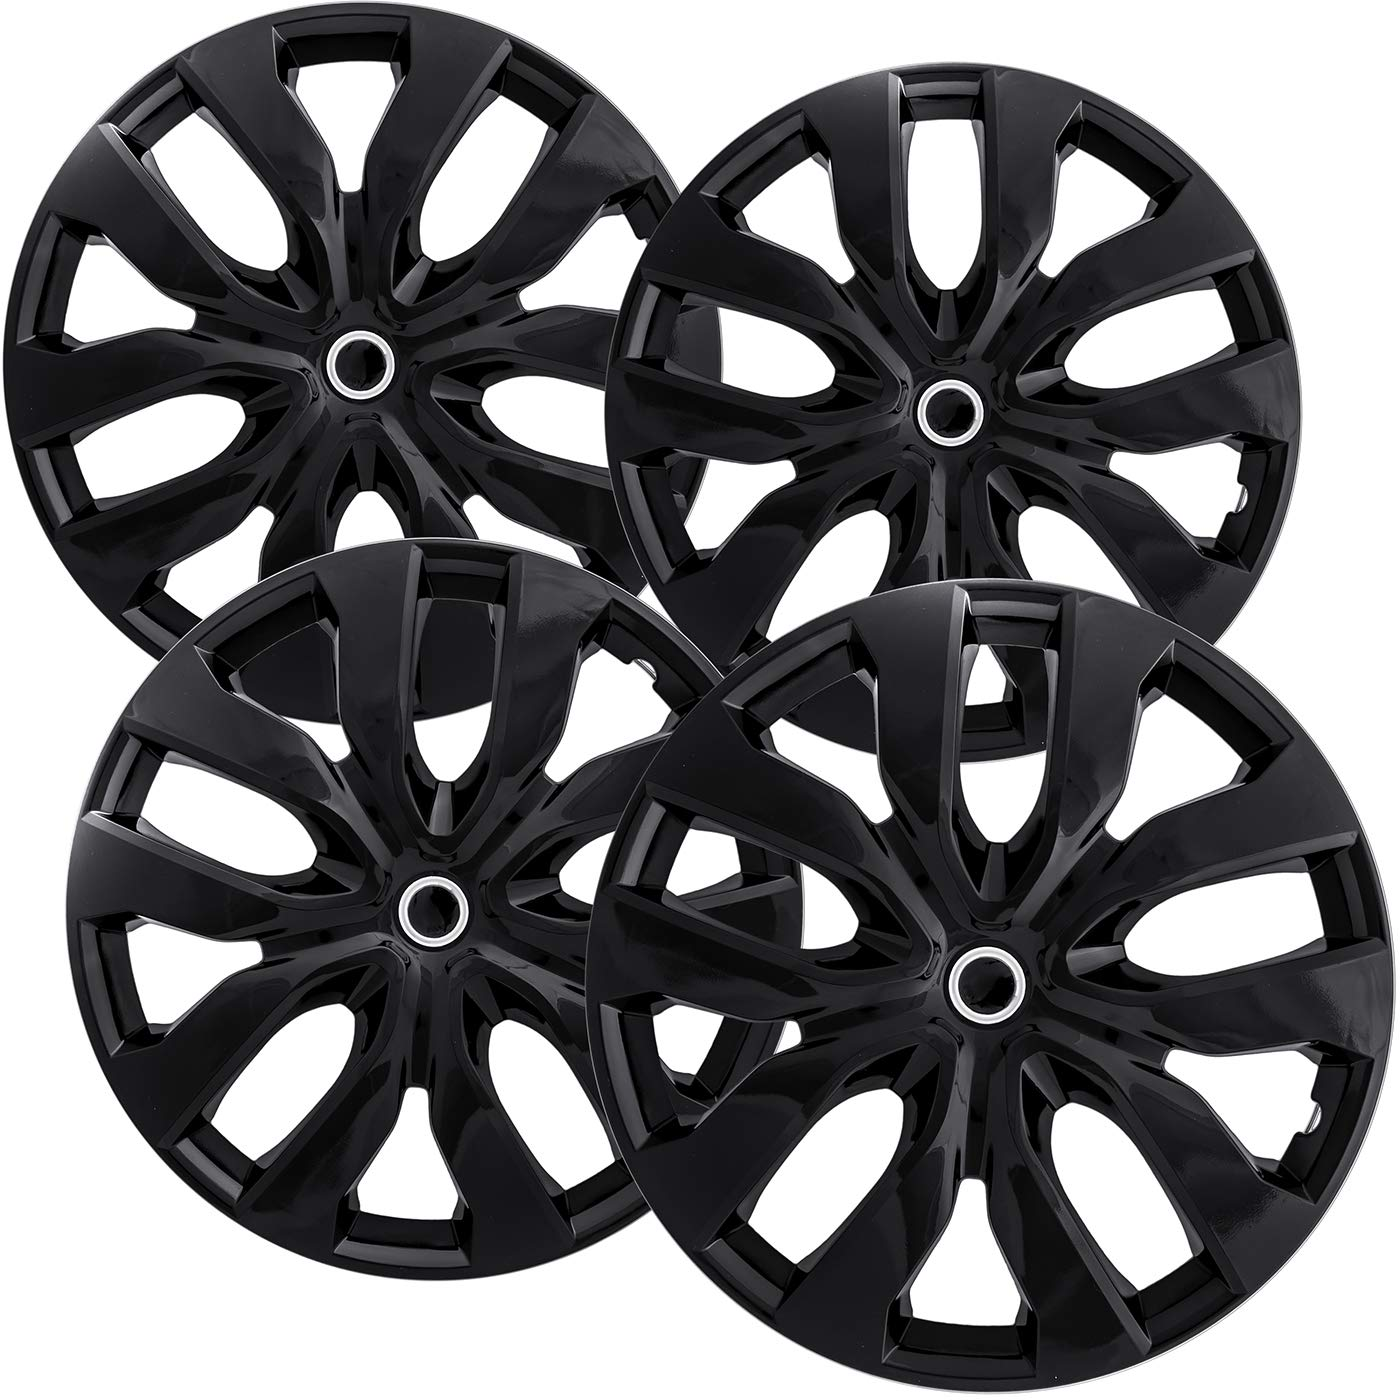 amazon oxgord 15 inch hubcaps best for nissan rogue set of 4 Auto Sound Systems set of 4 wheel covers 15in hub caps ice black rim cover car accessories for 15 inch wheels snap on hubcap auto tire replacement exterior cap